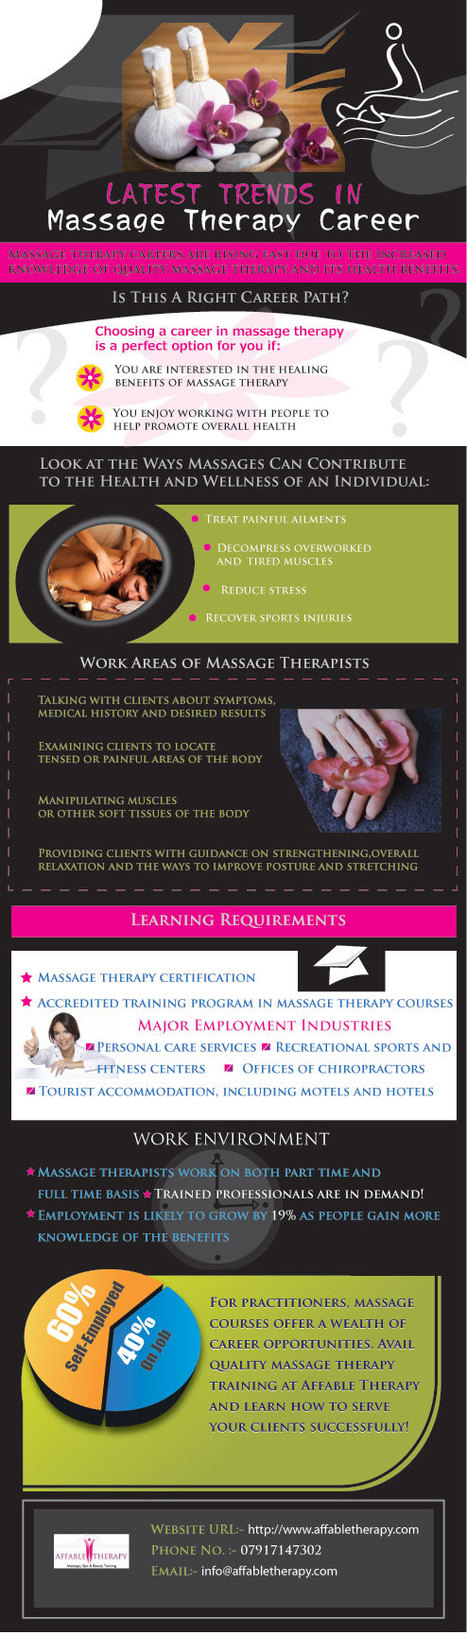 Latest Trends in Massage Therapy Career | Massage Training Courses | Scoop.it